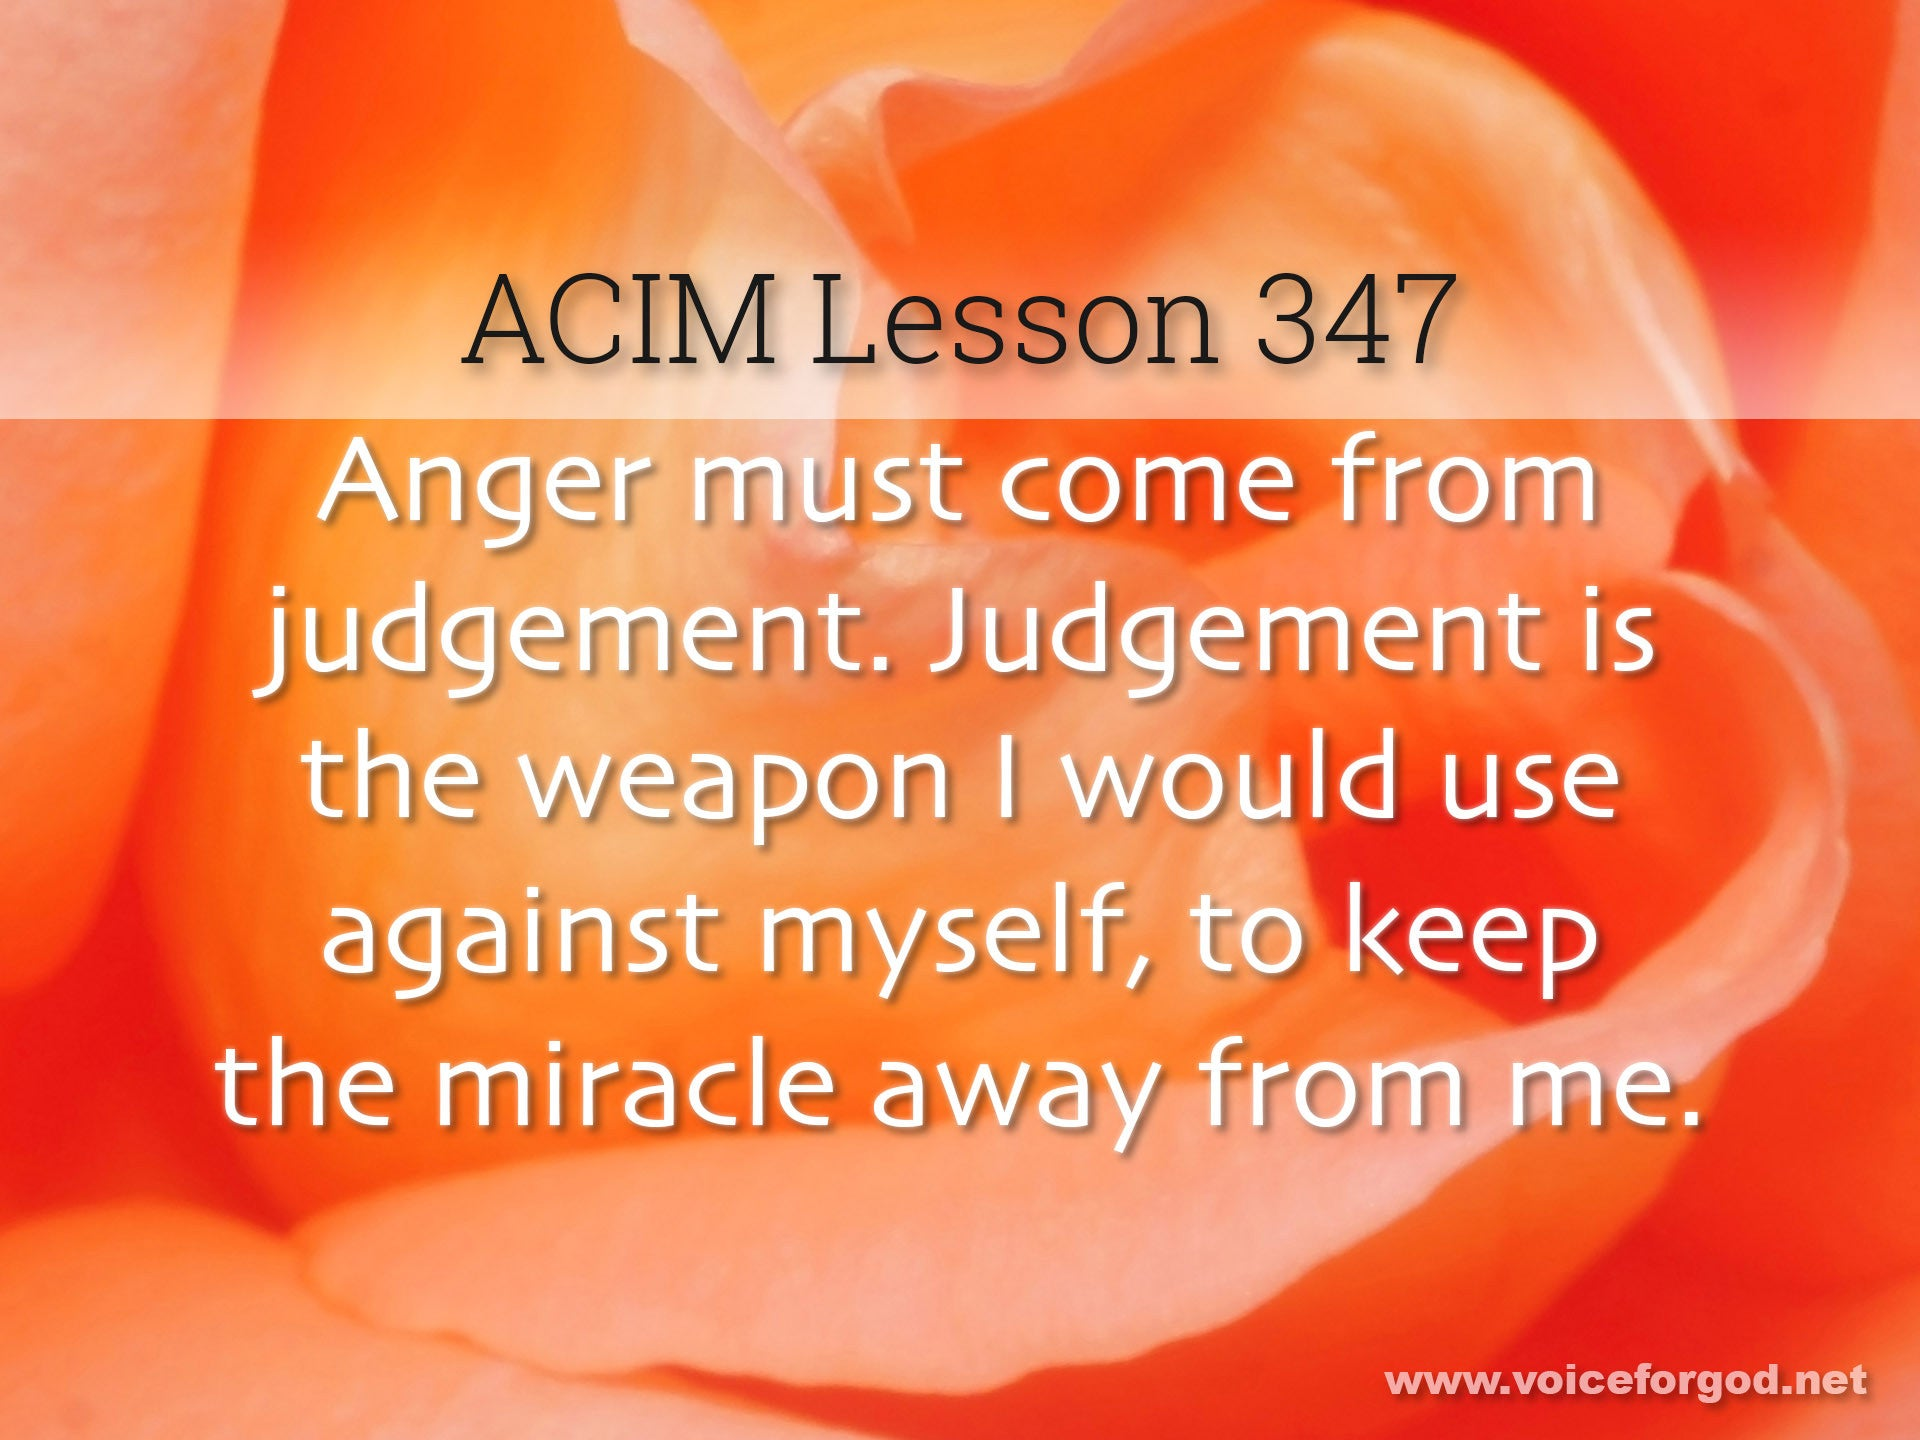 ACIM Lesson 347 - A Course in Miracles Workbook Lesson 347